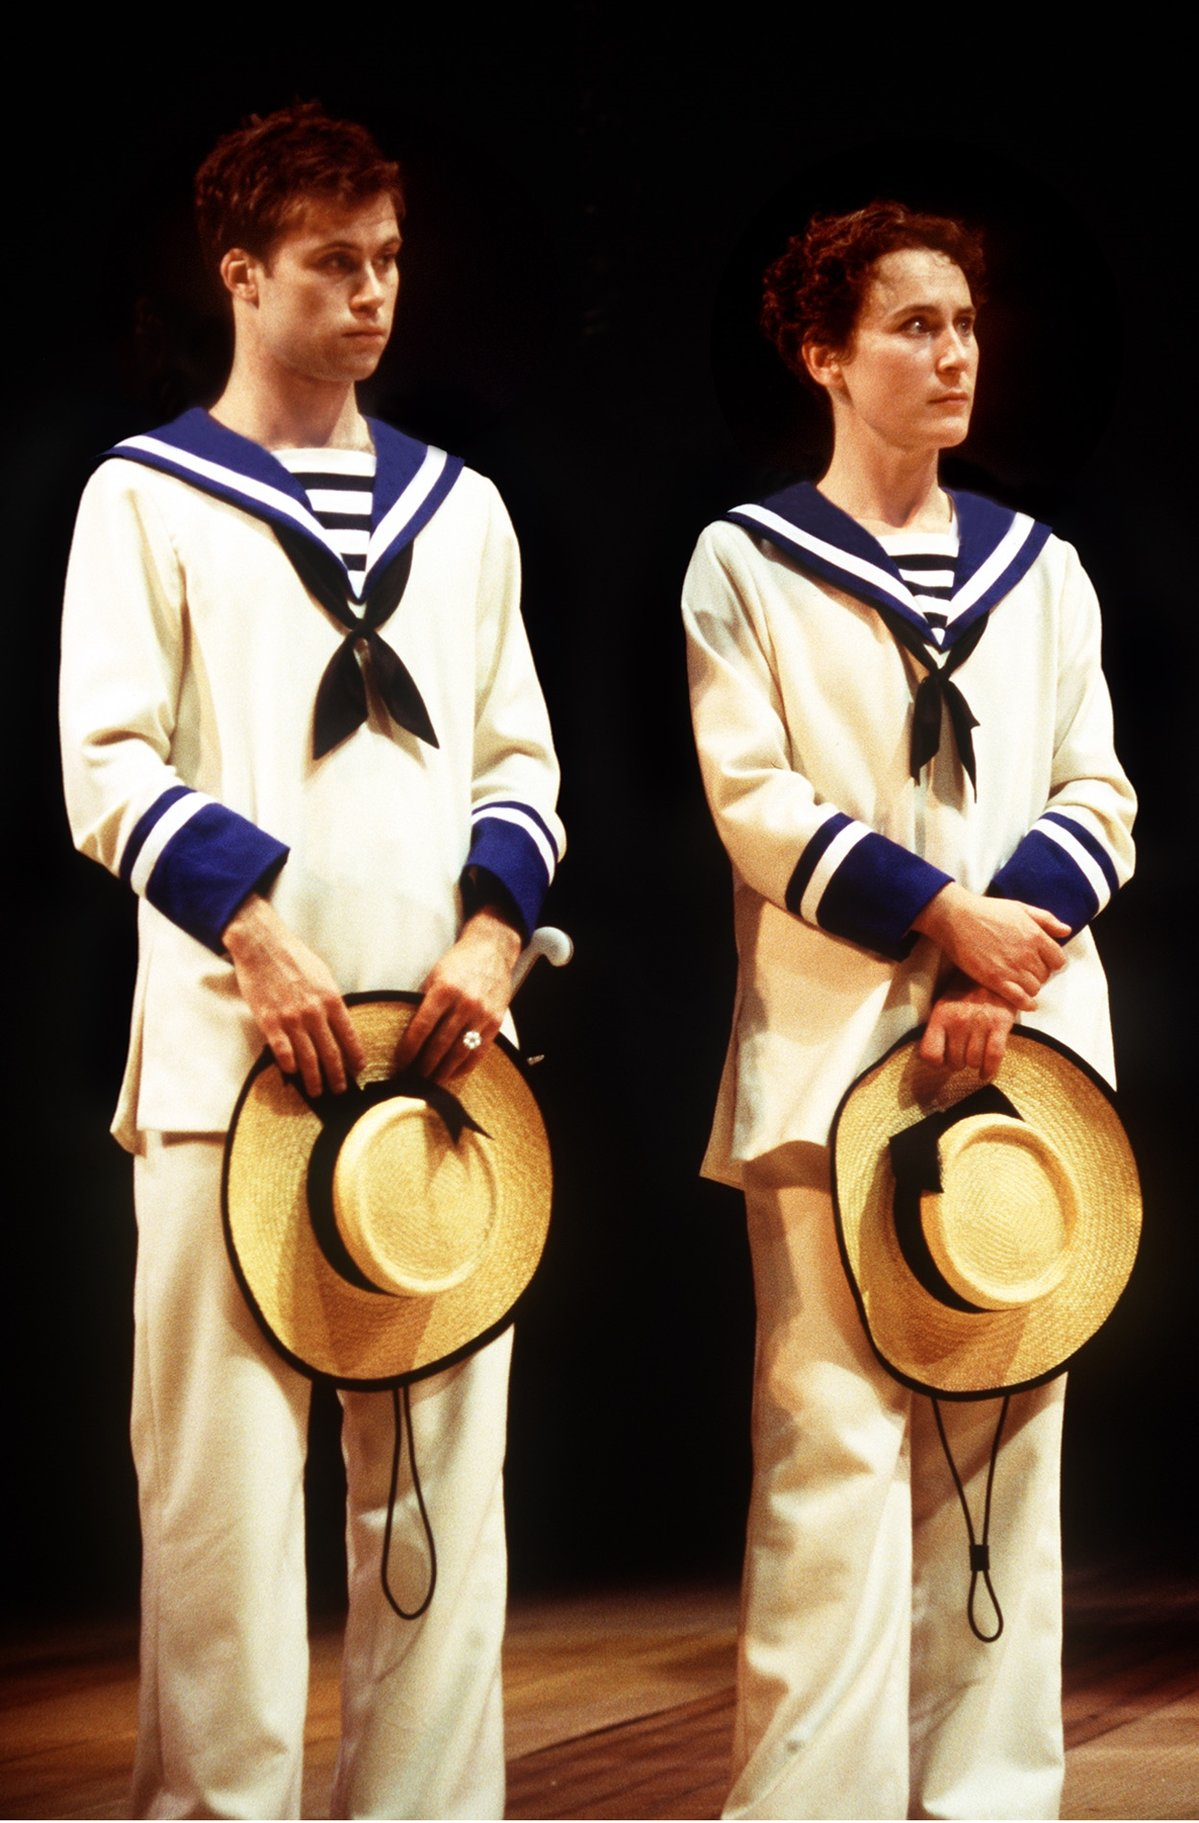 Viola and Sebastian stand side by side in sailor's uniforms with their arms crossed both holding large hats in the 1998 production of Twelfth Night.